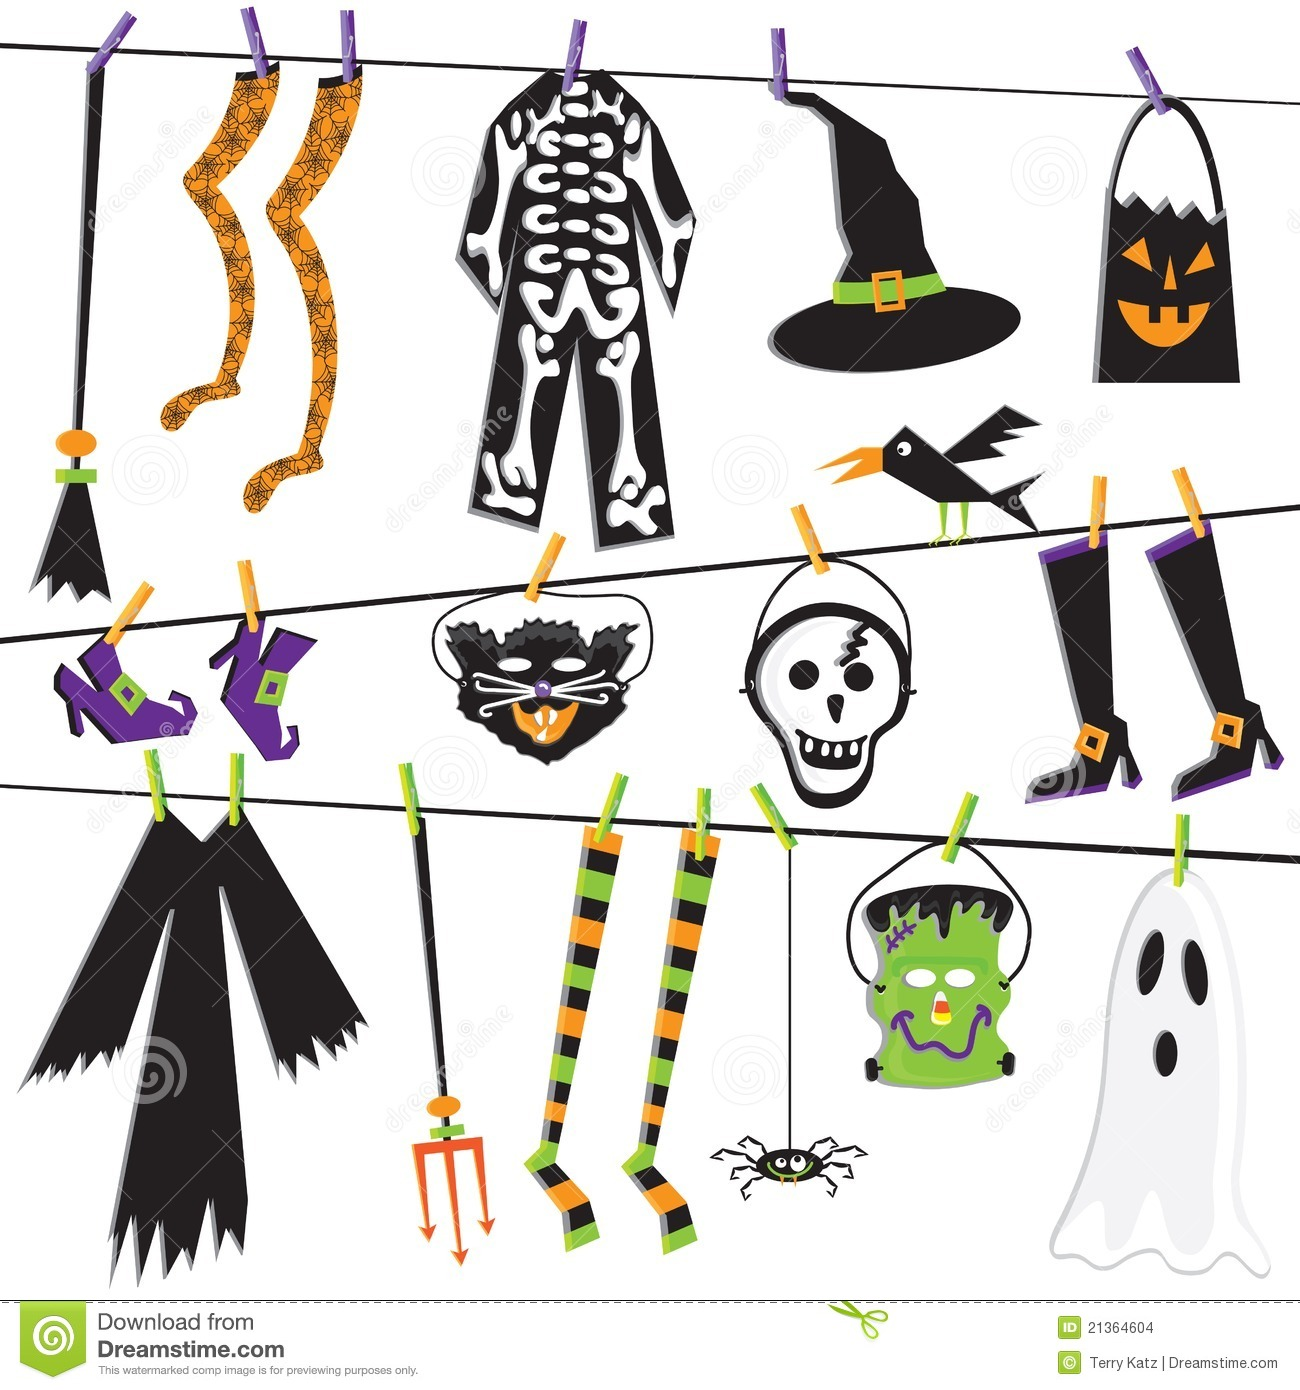 Costume clipart #13, Download drawings